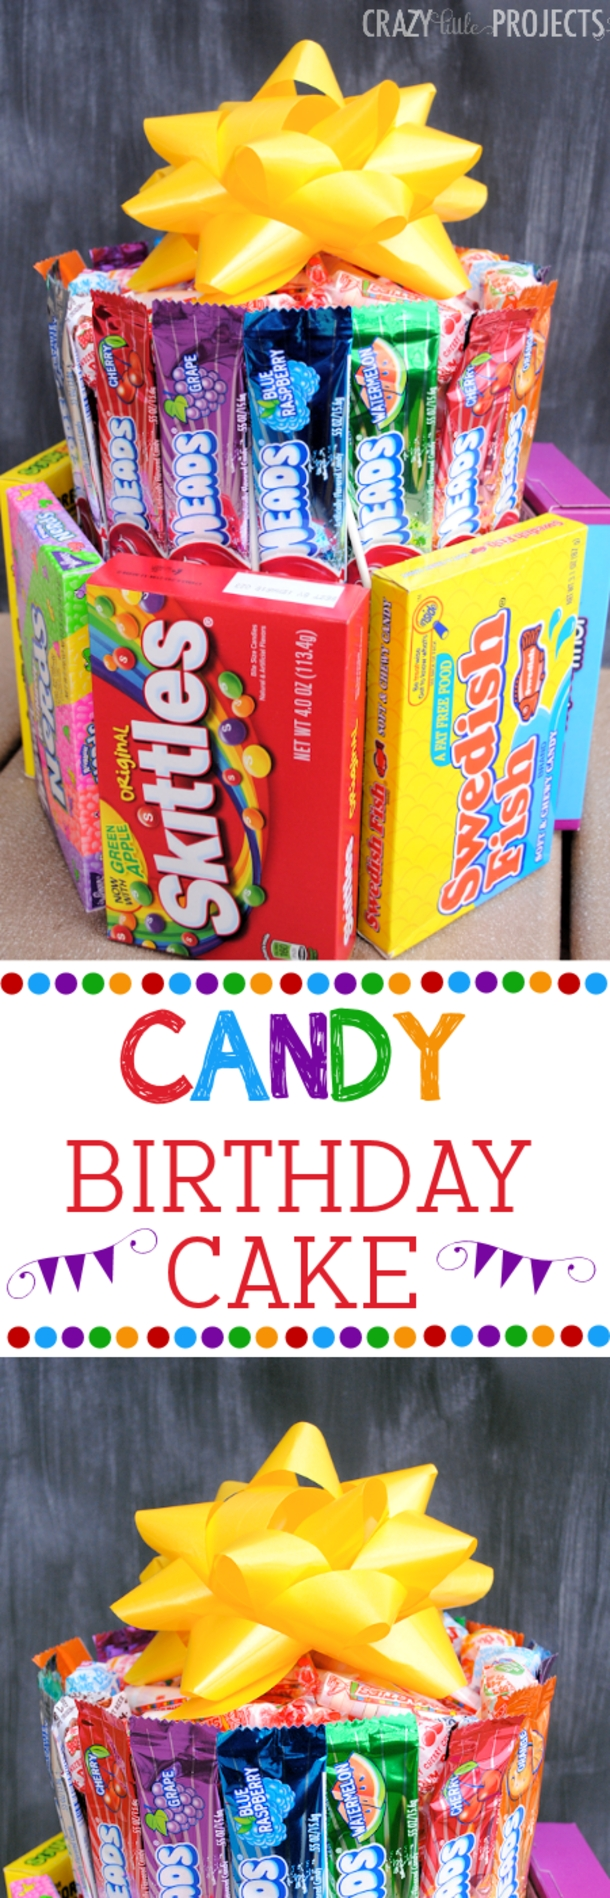 10 Unique Creative 16Th Birthday Gift Ideas 10 diy gifts for a girls sweet 16 sweet 16 sweet 16 gifts and gift 2020